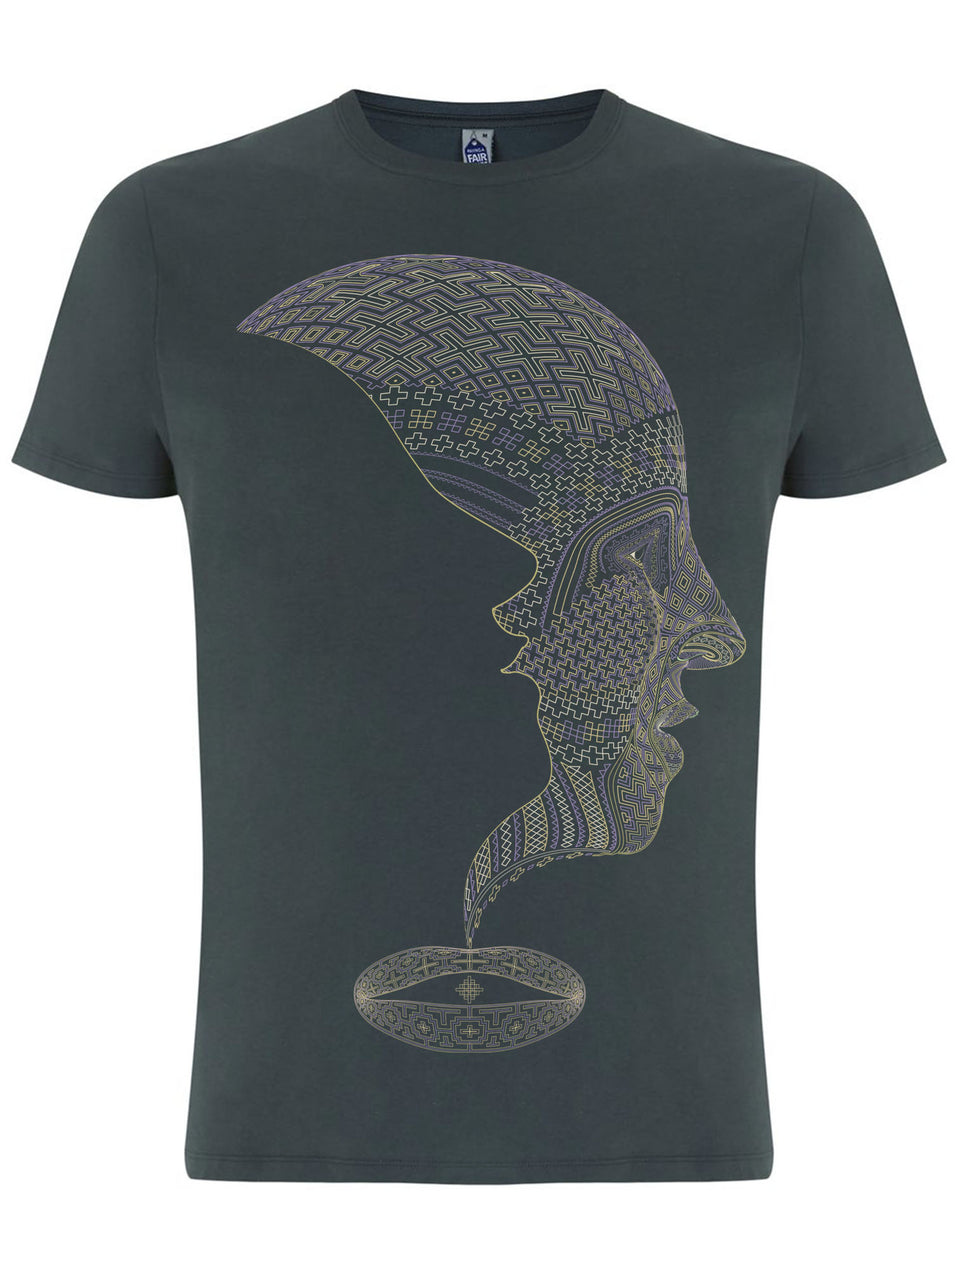 Icaruna Made To Order Men T-Shirt - Light Charcoal